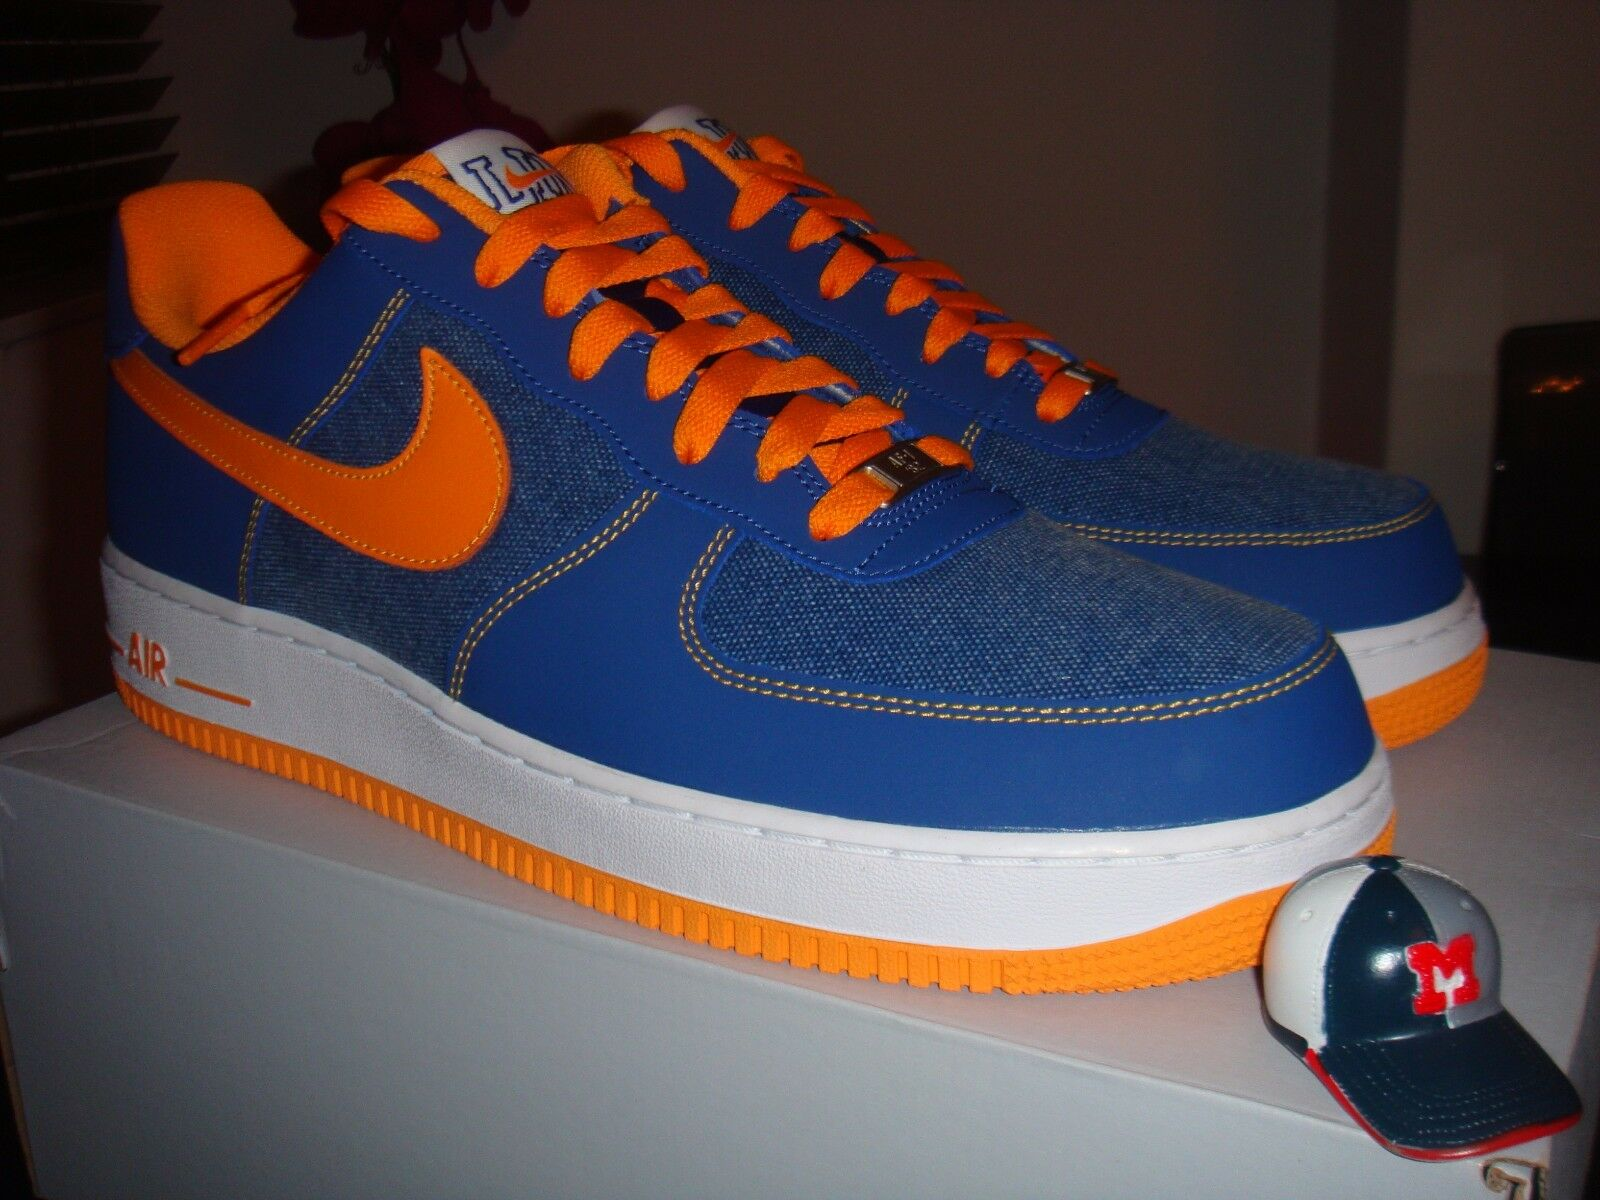 Nike Force 1 bajo 12.5/PE/Knicks/AF1/Off Jeremy Lin Air US 12.5/PE/Knicks/AF1/Off bajo Blanco/Lab/'07 43fdc5